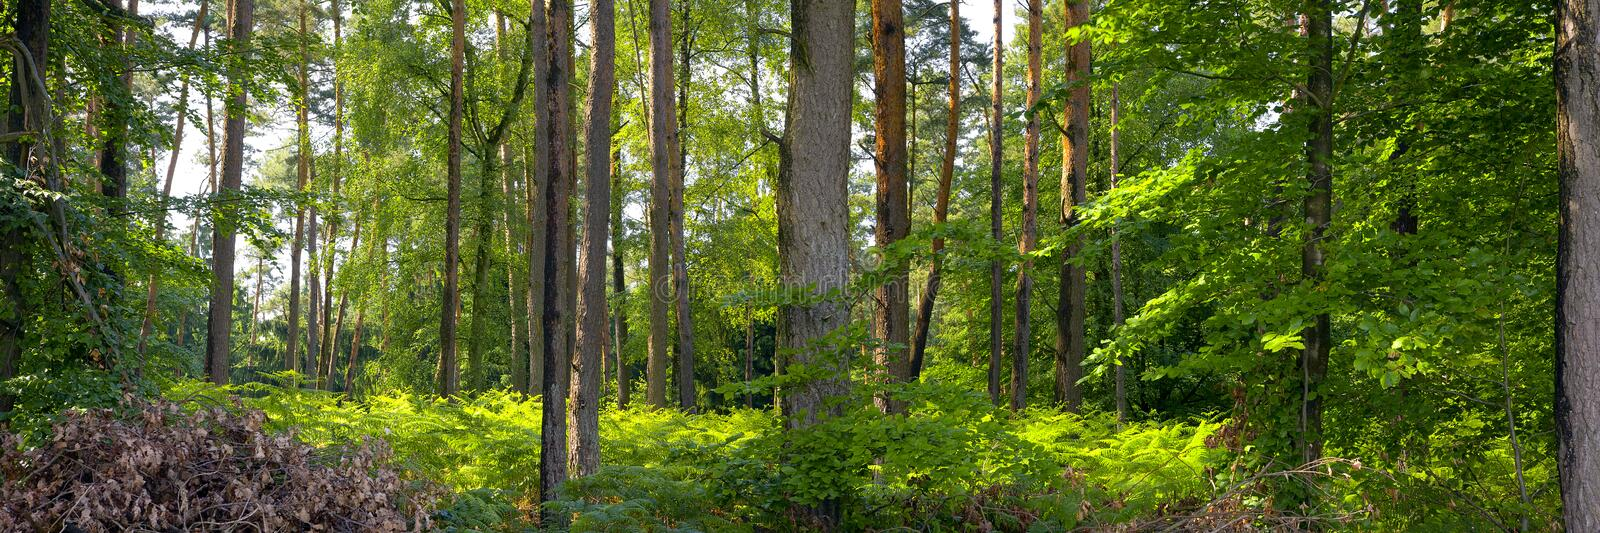 Mixed forest. A mixed forest ( pine,spruce and beech) in a sunny day, summer by Beckingen, Saarland / Germany royalty free stock photography